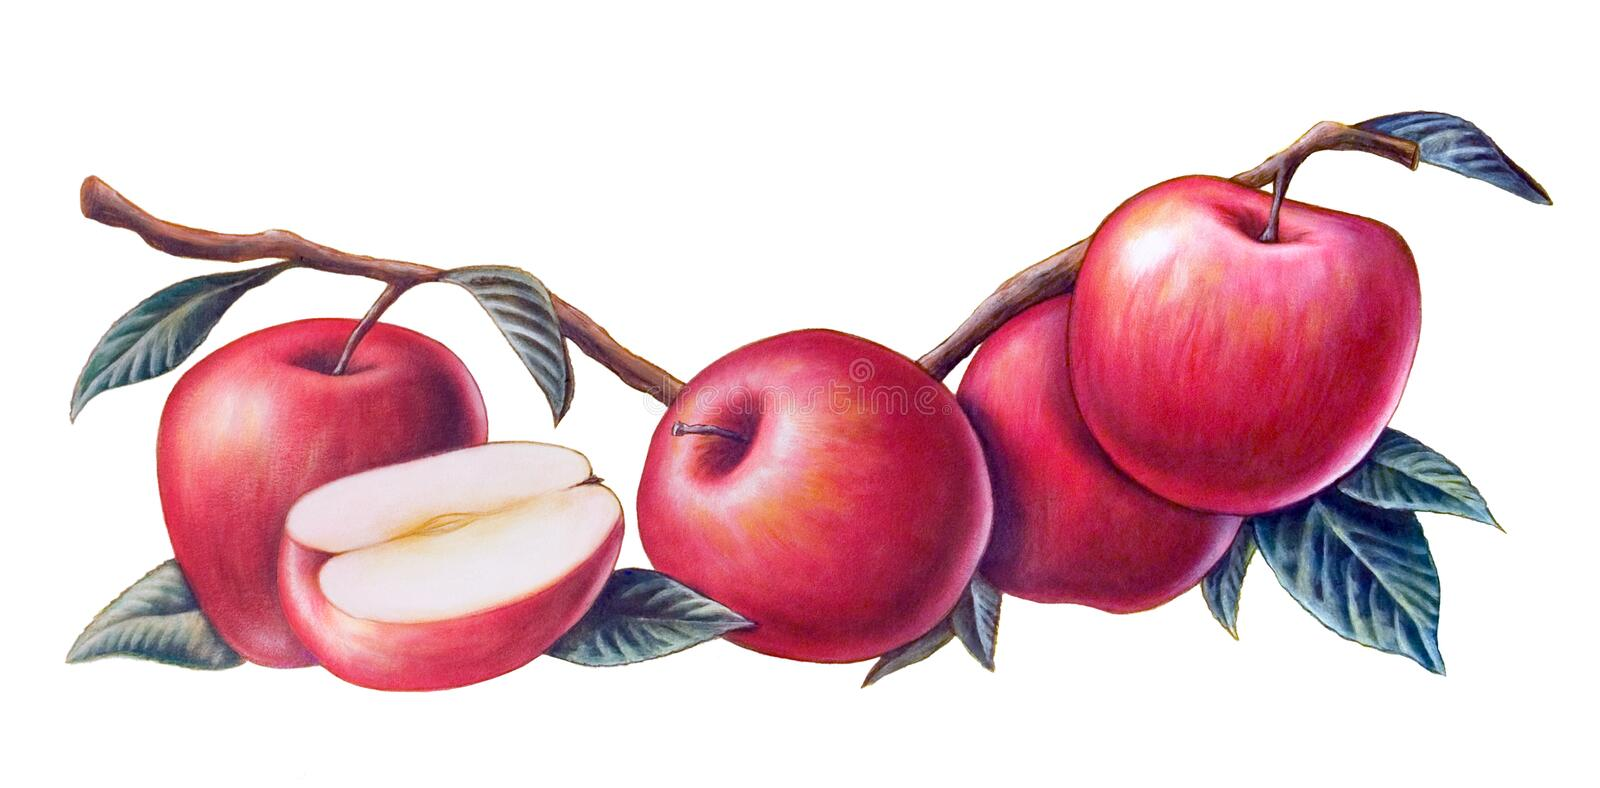 Red apples. Some red apples over a white background. Hand painted illustration vector illustration